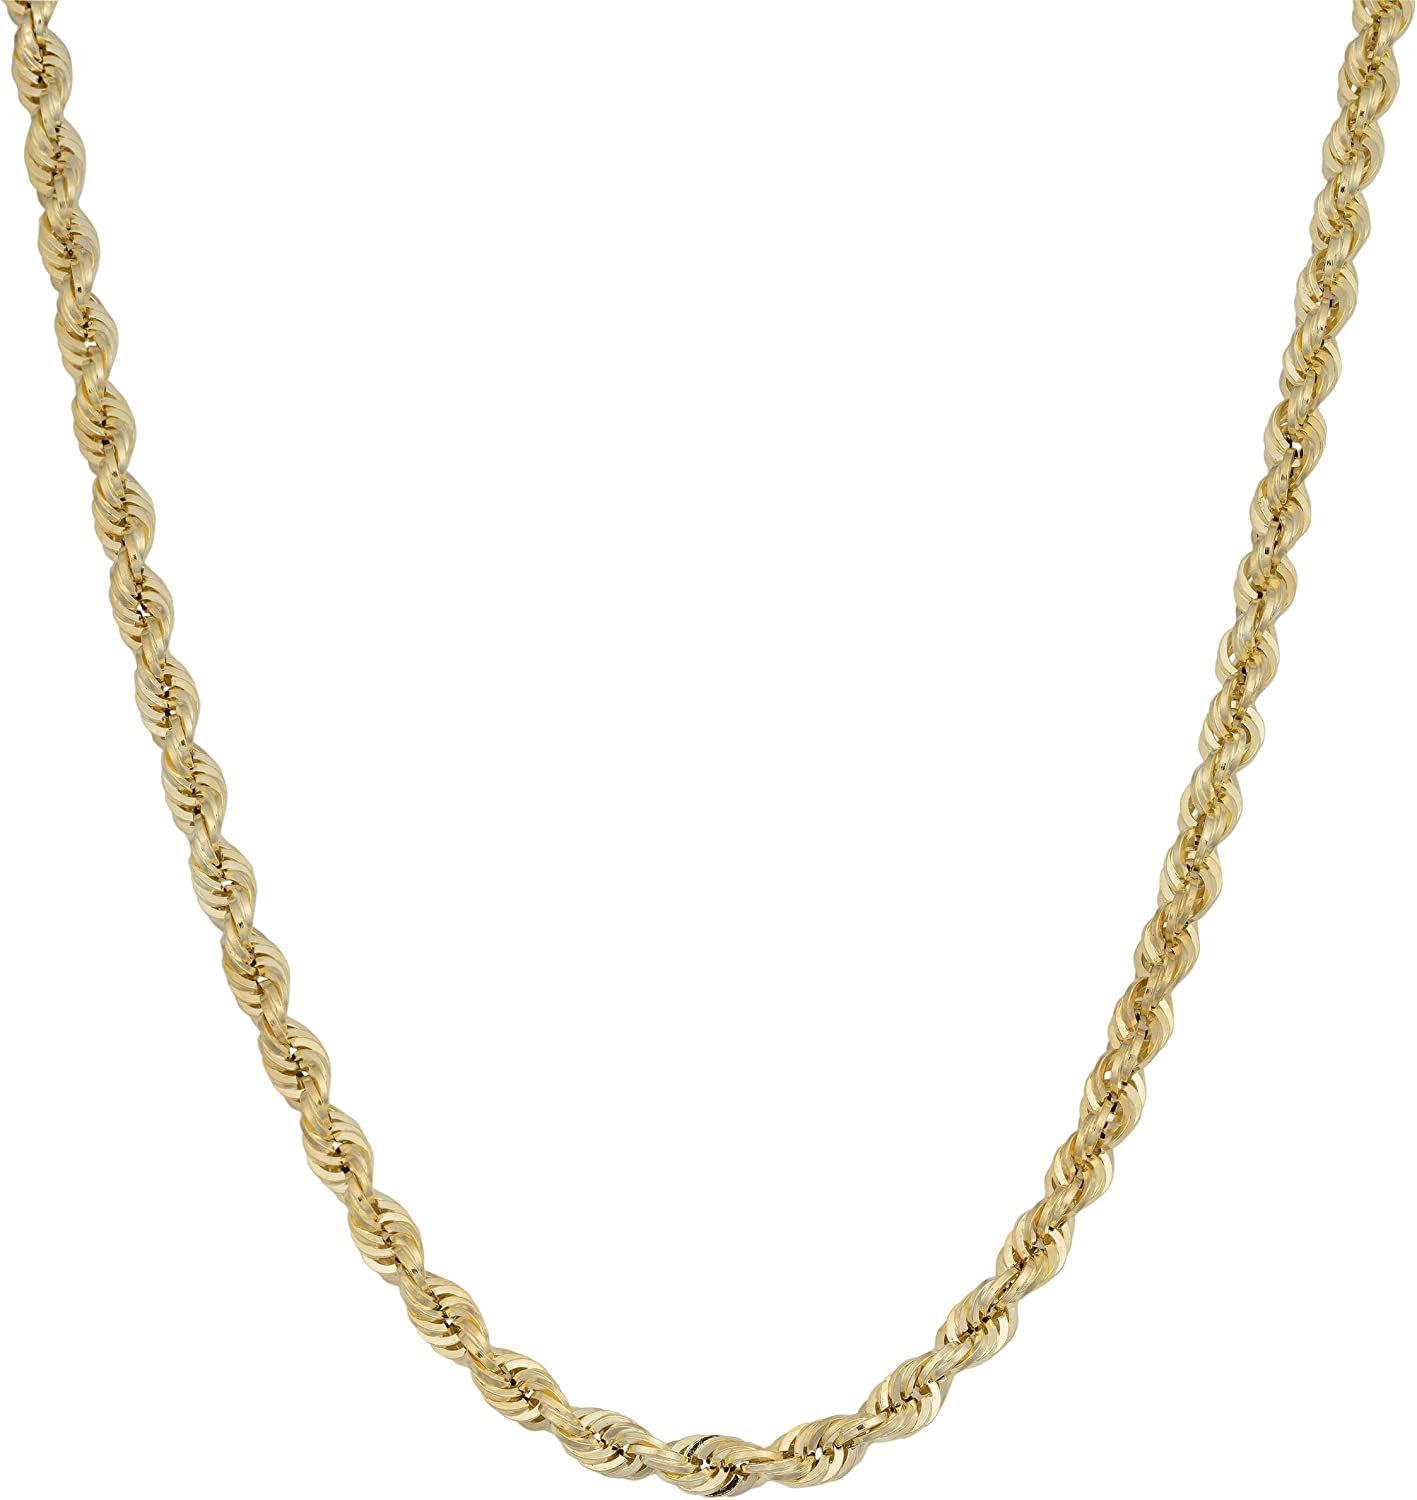 ROPE CHAIN 24 INCHES LONG 10KT GOLD HALLOW ROPE CHAIN 2.90 MM WIDE